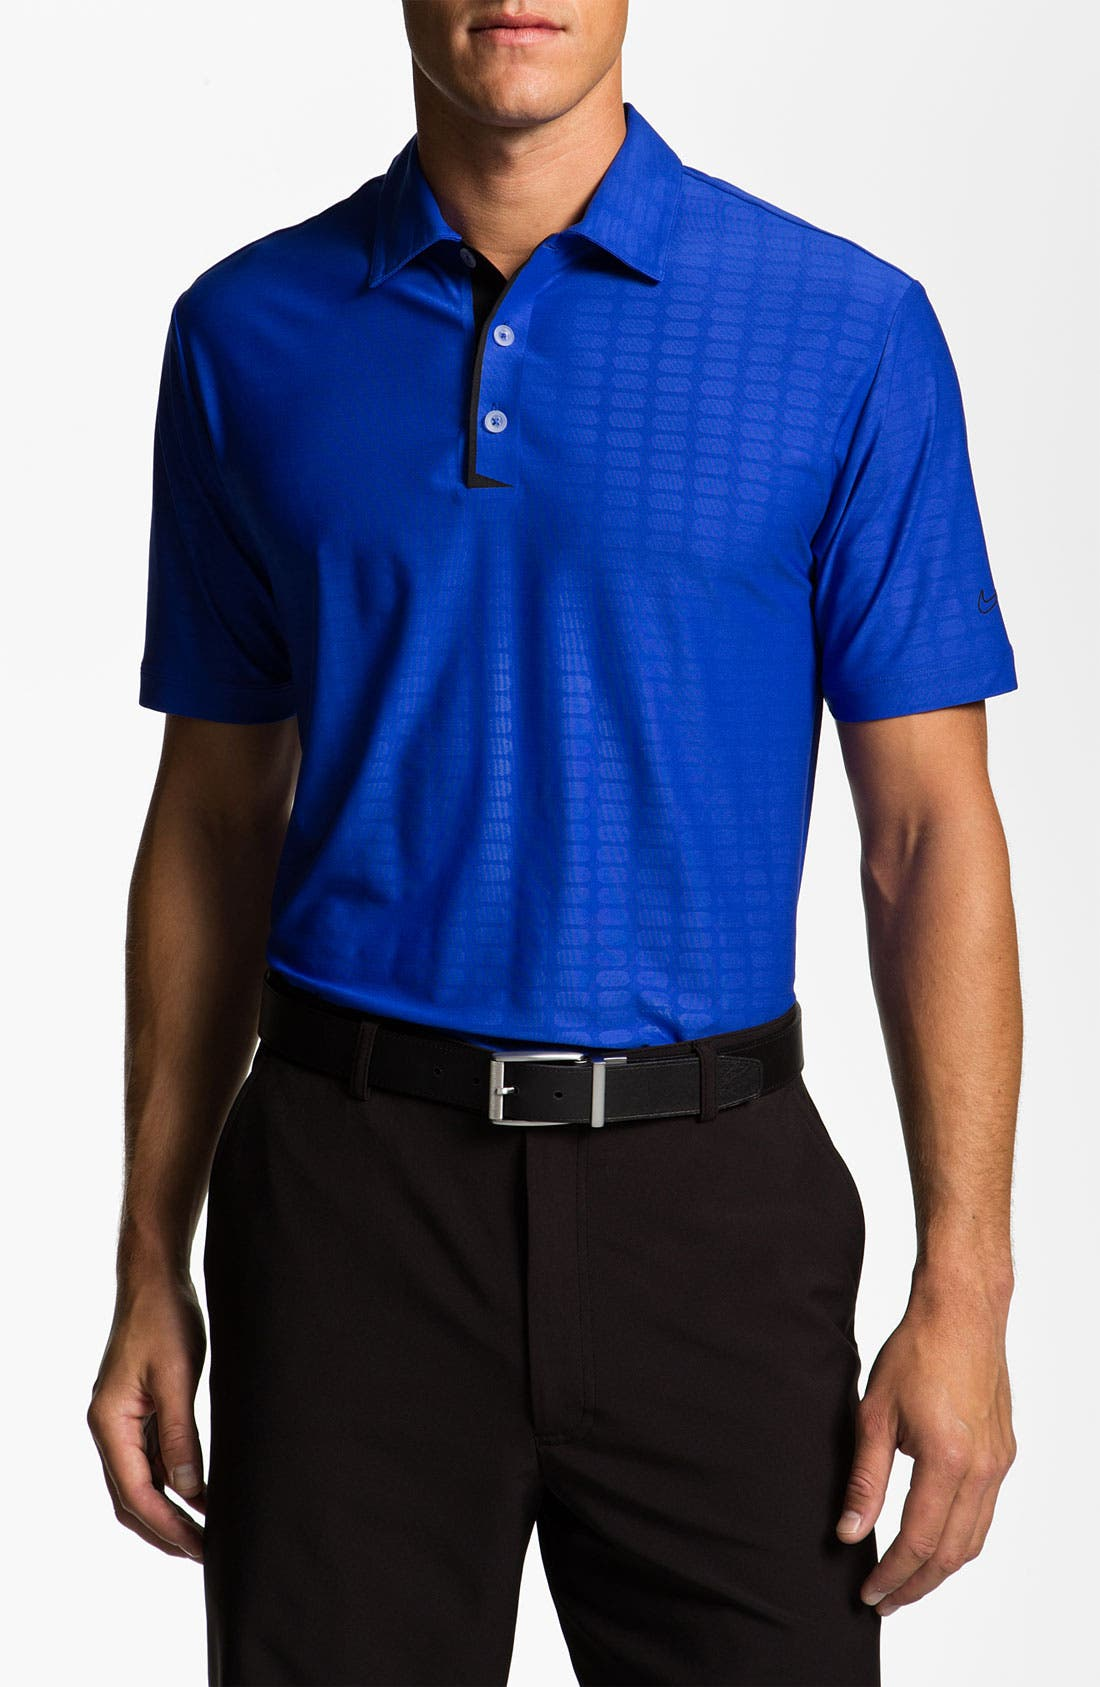 Main Image - Nike Golf Bonded Embossed Dri-FIT Polo